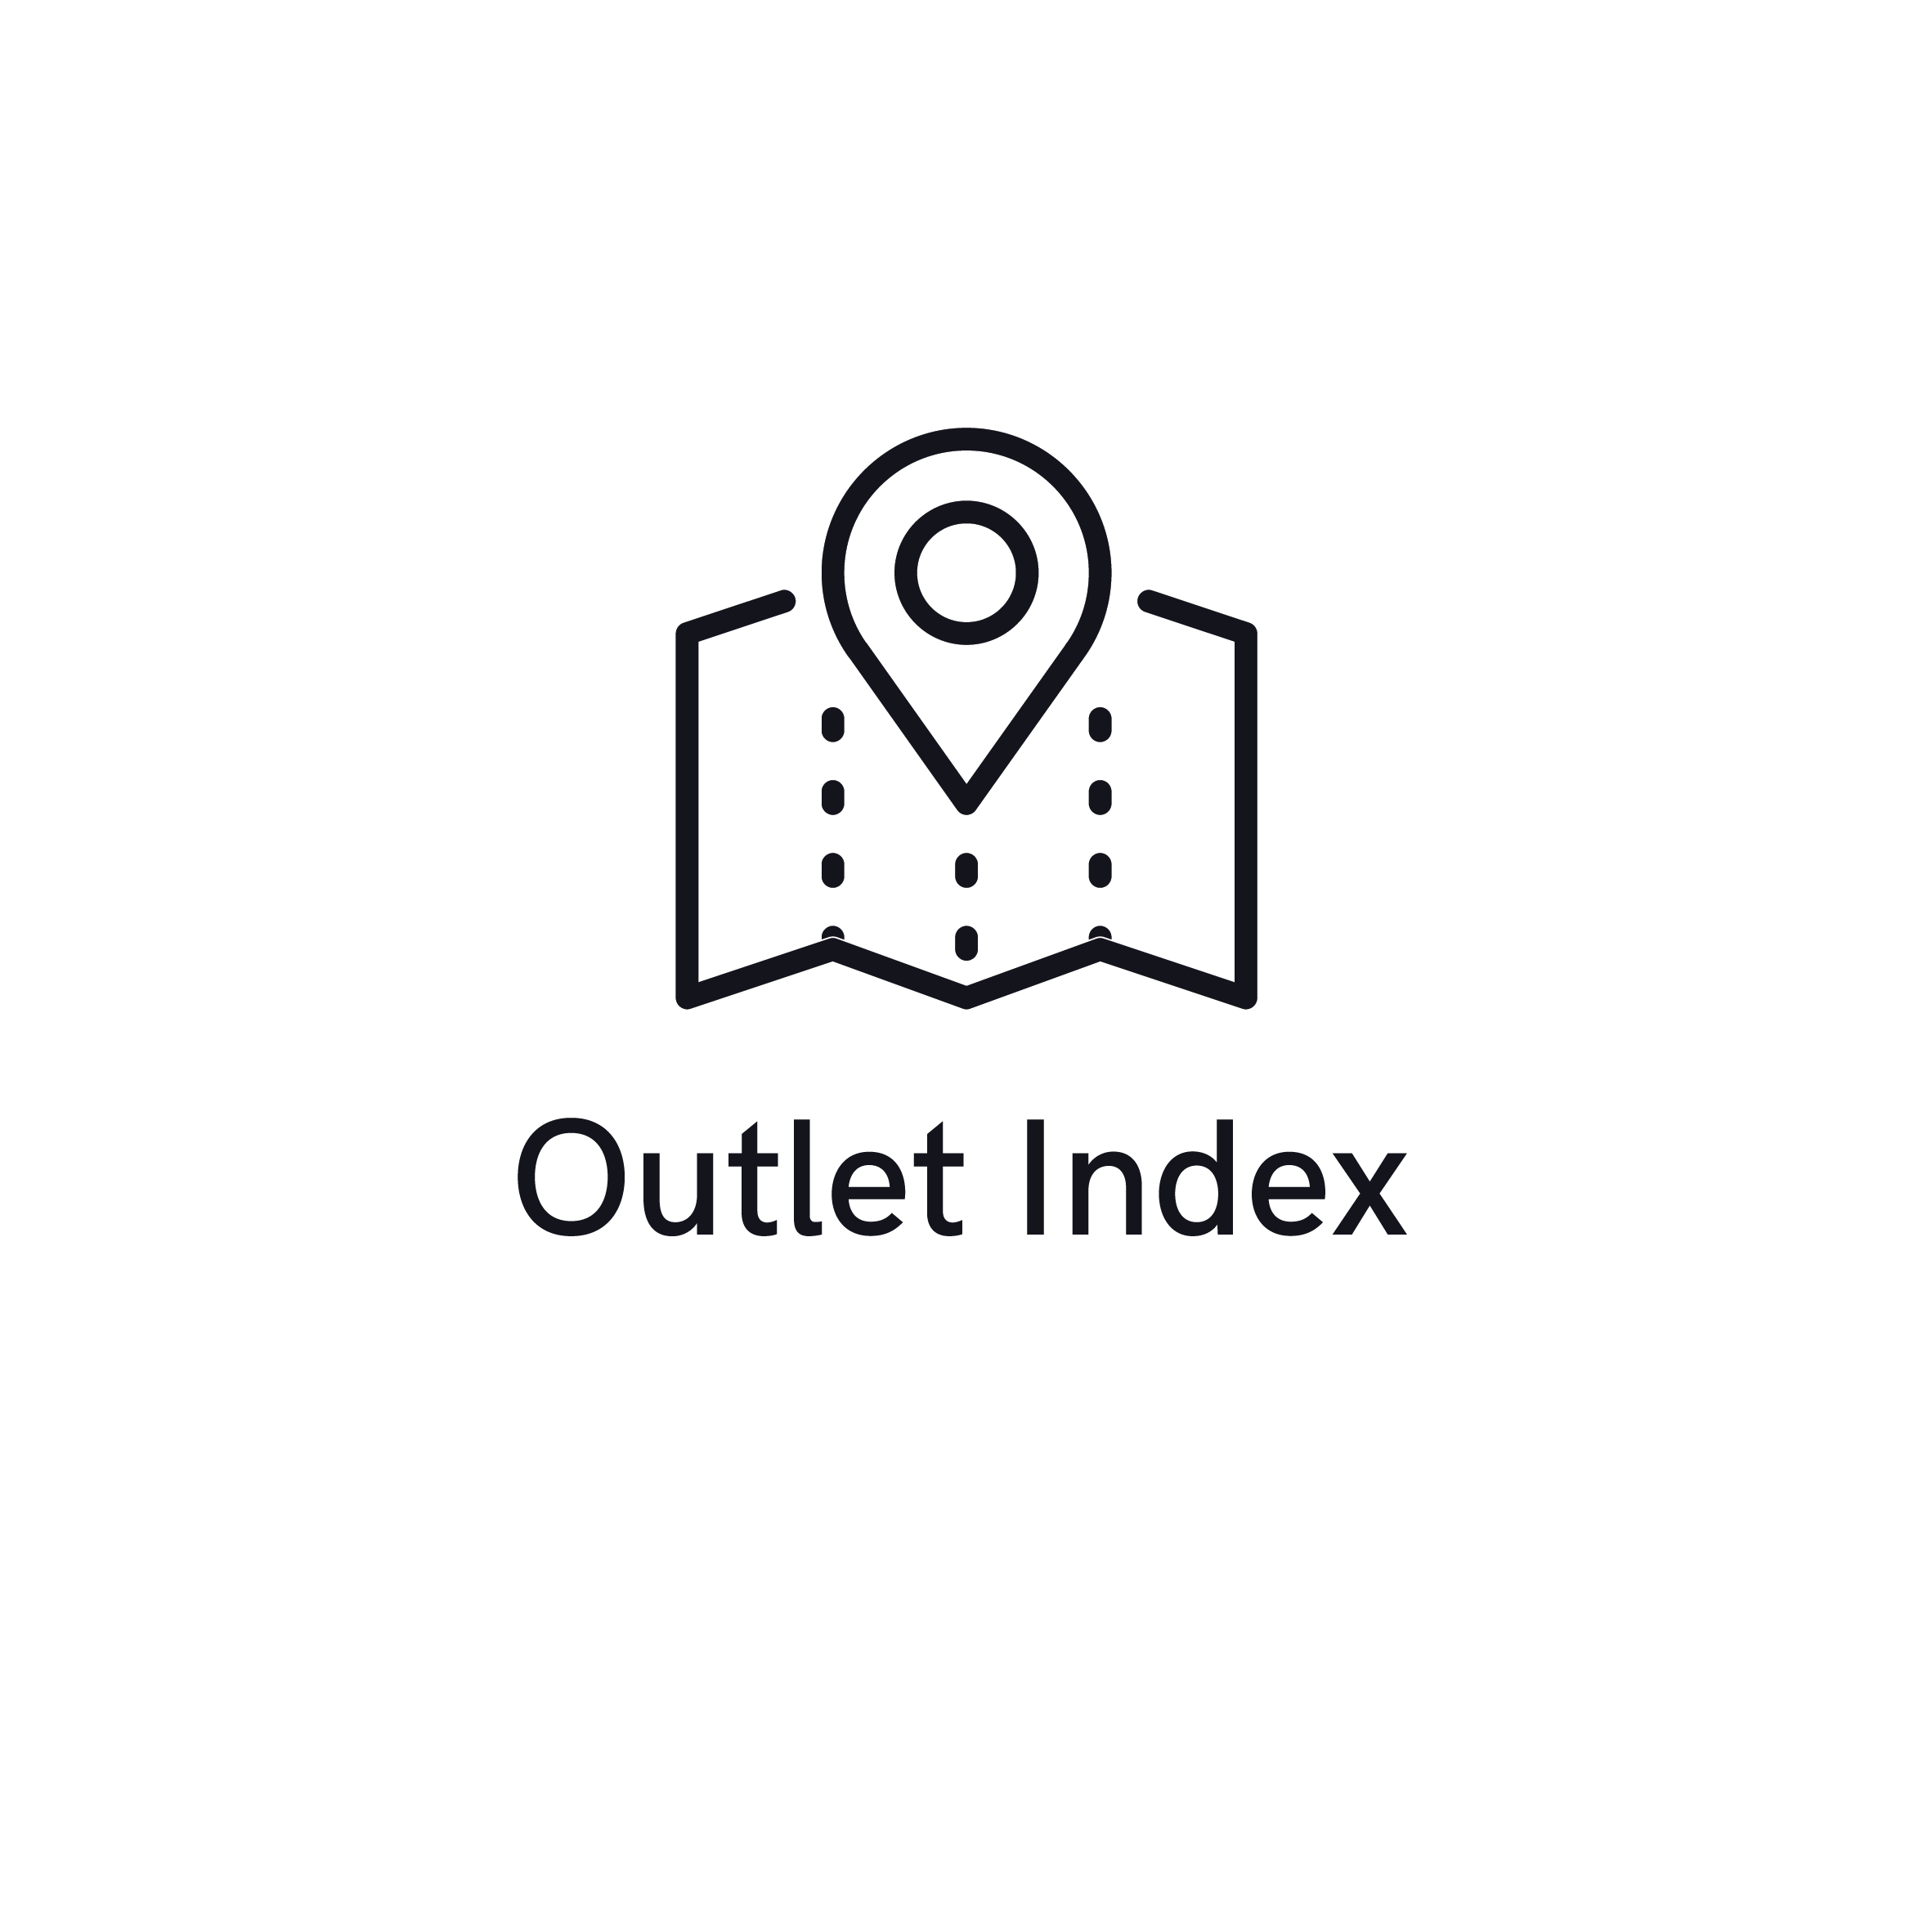 Outlet Index Blue